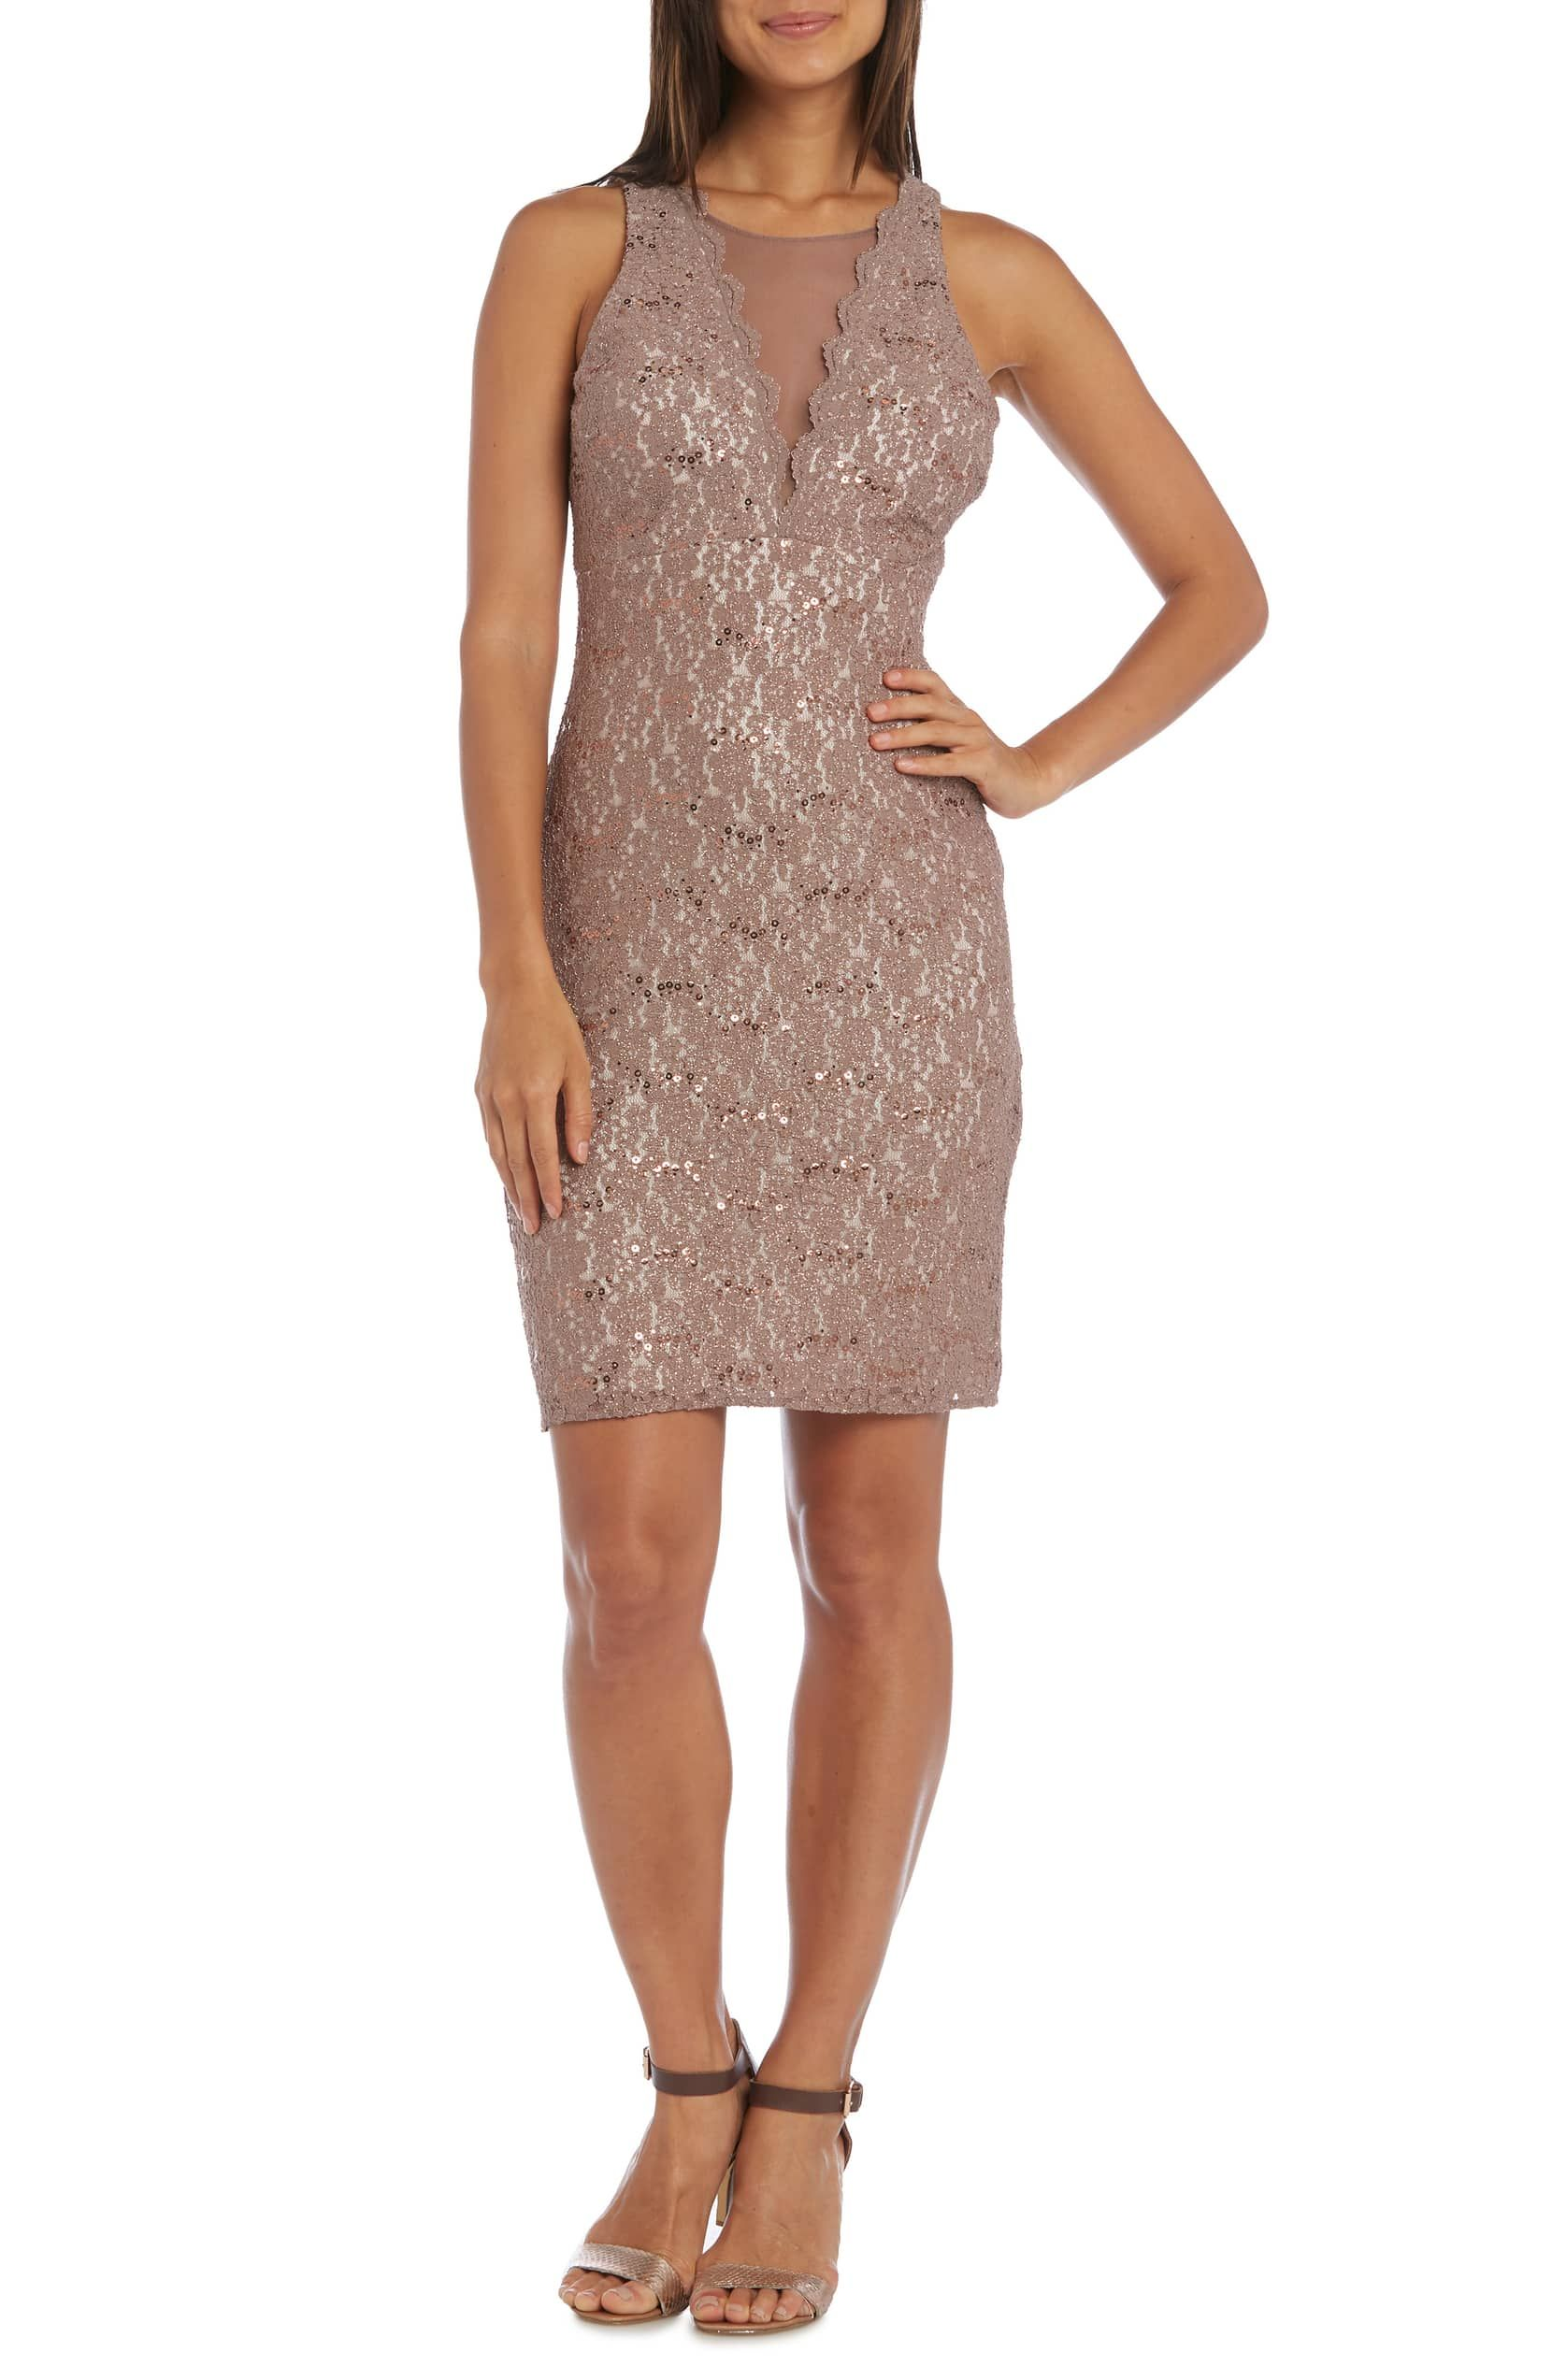 d5e77d9de New Morgan amp;. Lace Illusion Sheath Dress, Main, color, TAUPE/ IVORY